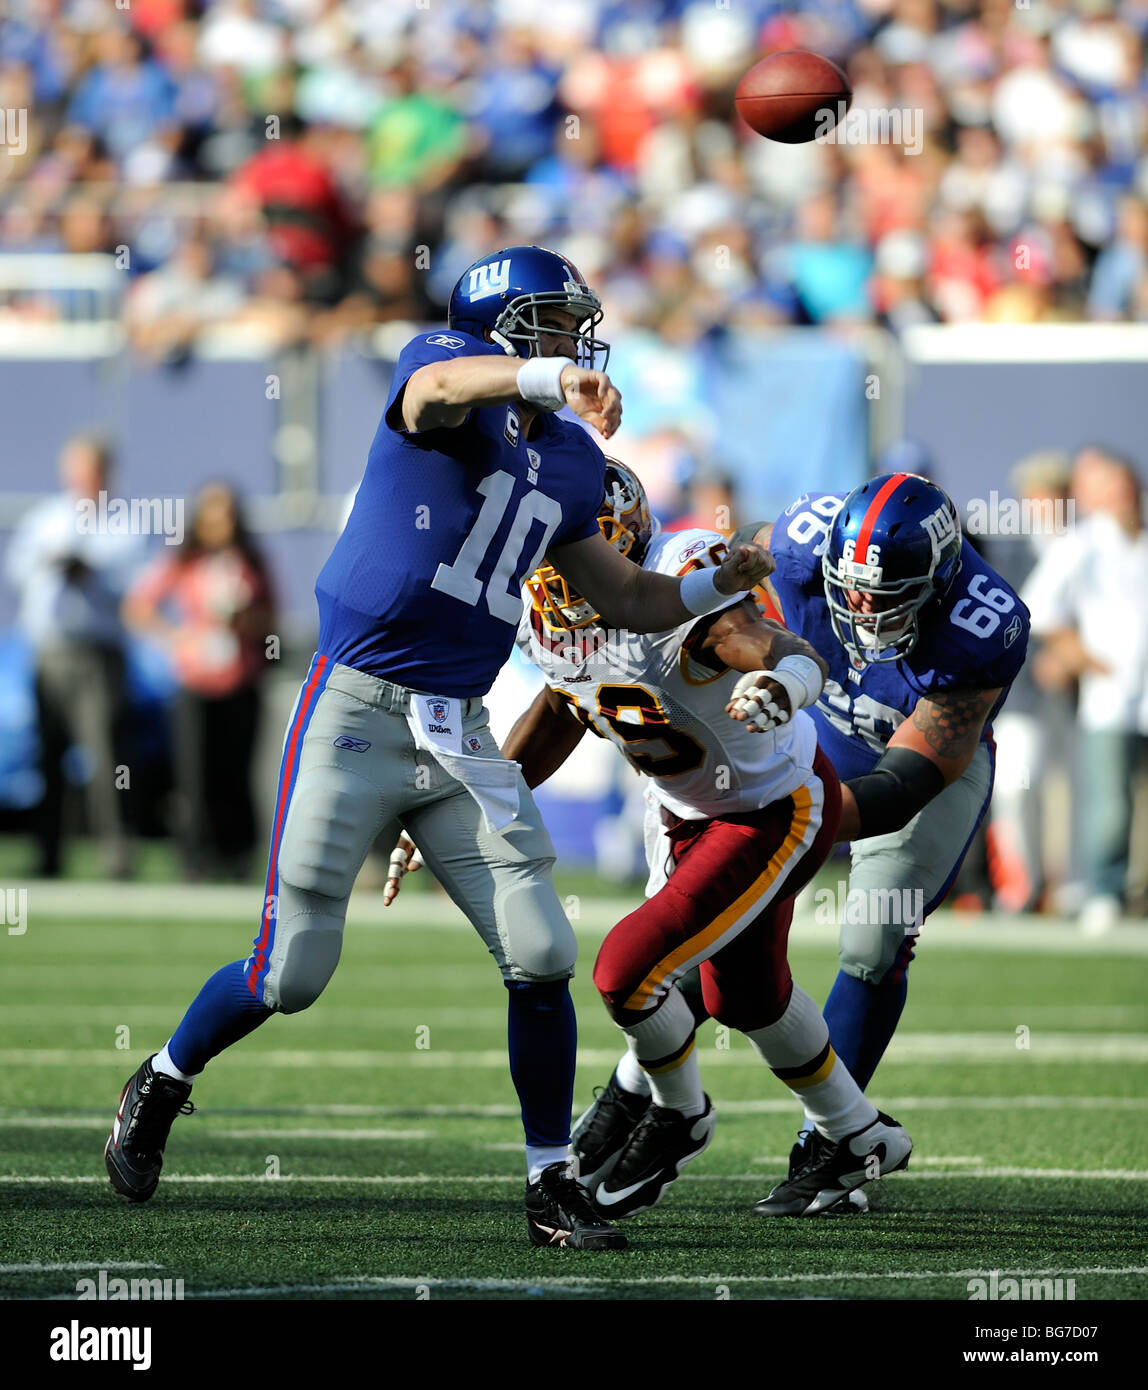 Eli Manning of the New York Giants gets the pass away while under pressure from the Washington Redskin defense - Stock Image